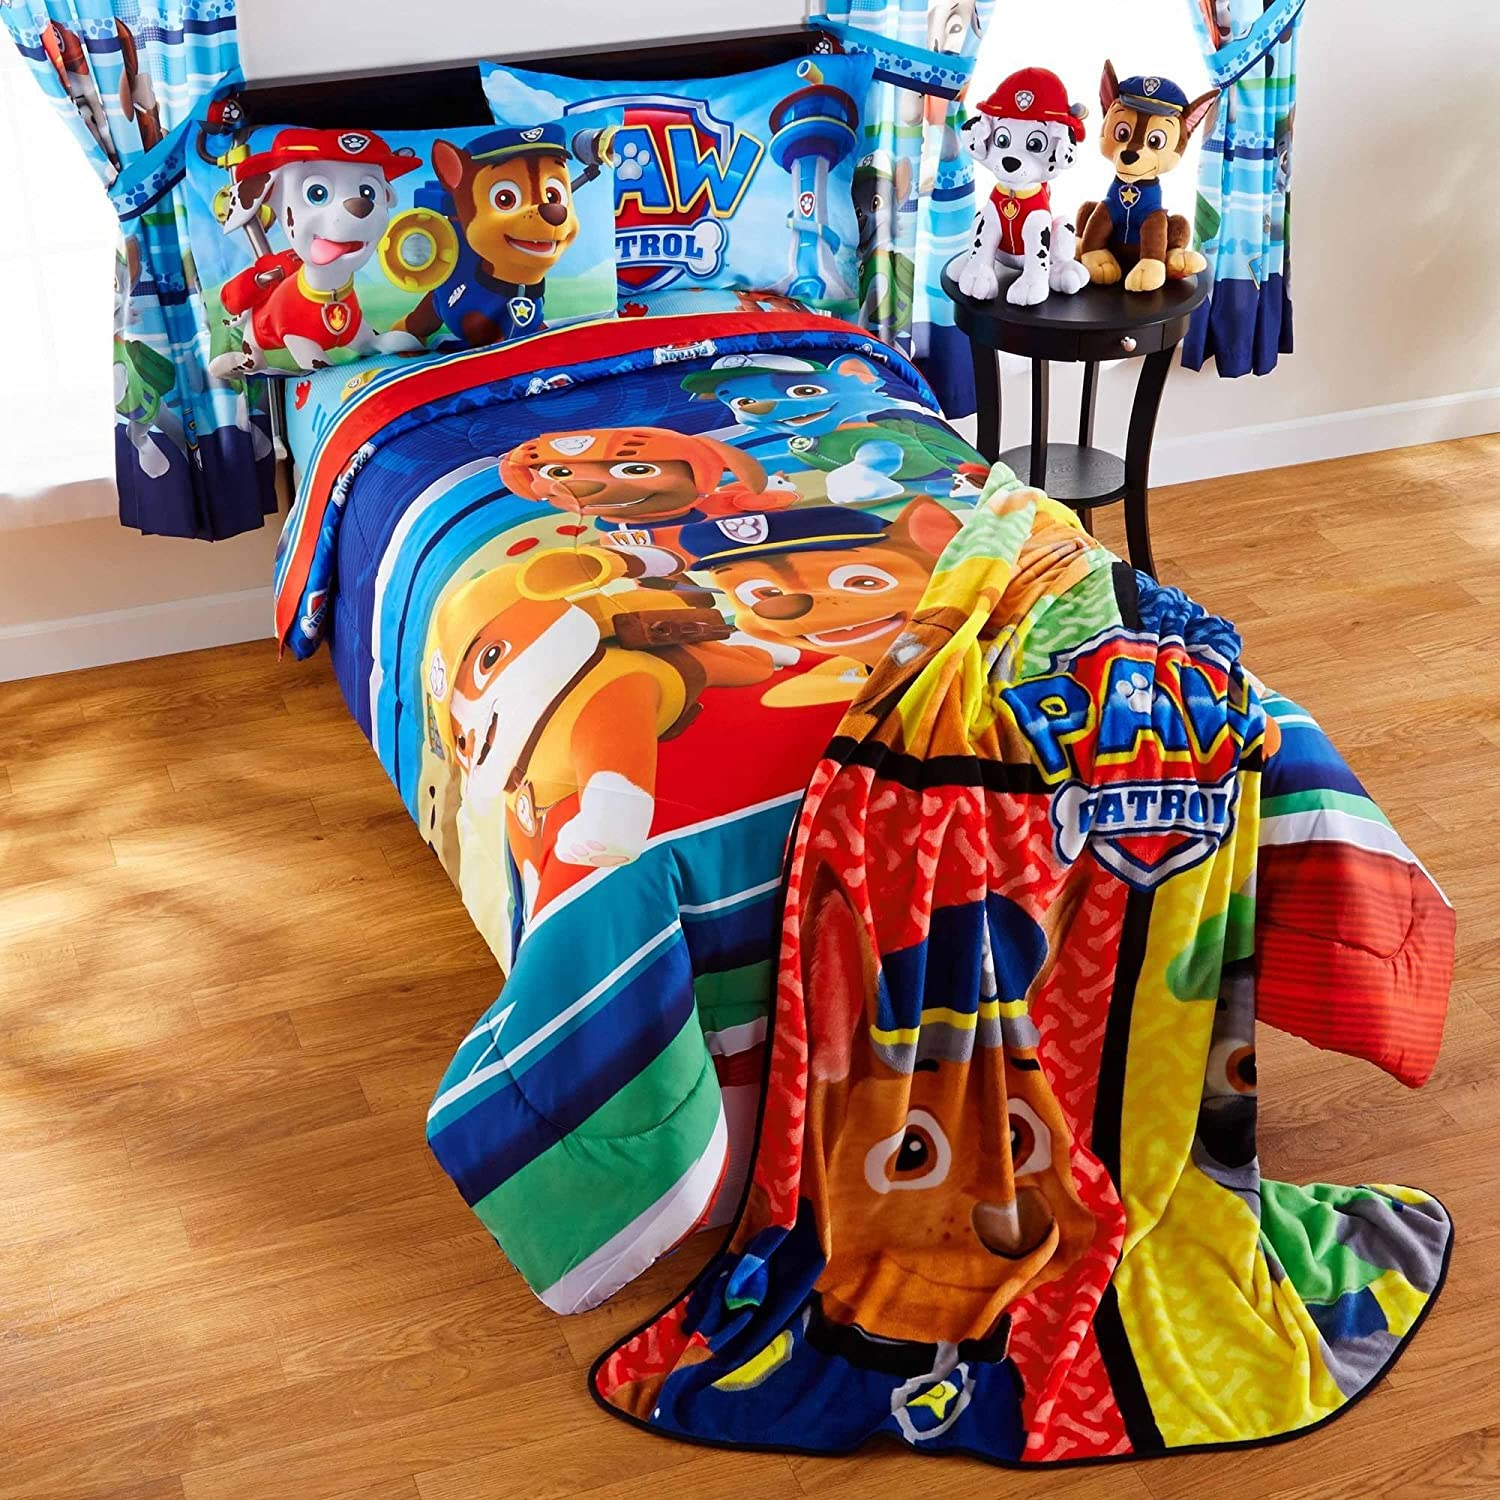 LO 5 Piece Kids Red Orange Blue Paw Patrol Comforter Full Set, Ryder Bedding Marshall Chase Rubble Fire Rescue Police Dog Heroe Puppies Pattern Doggy Paw Prints, Reversible Polyester